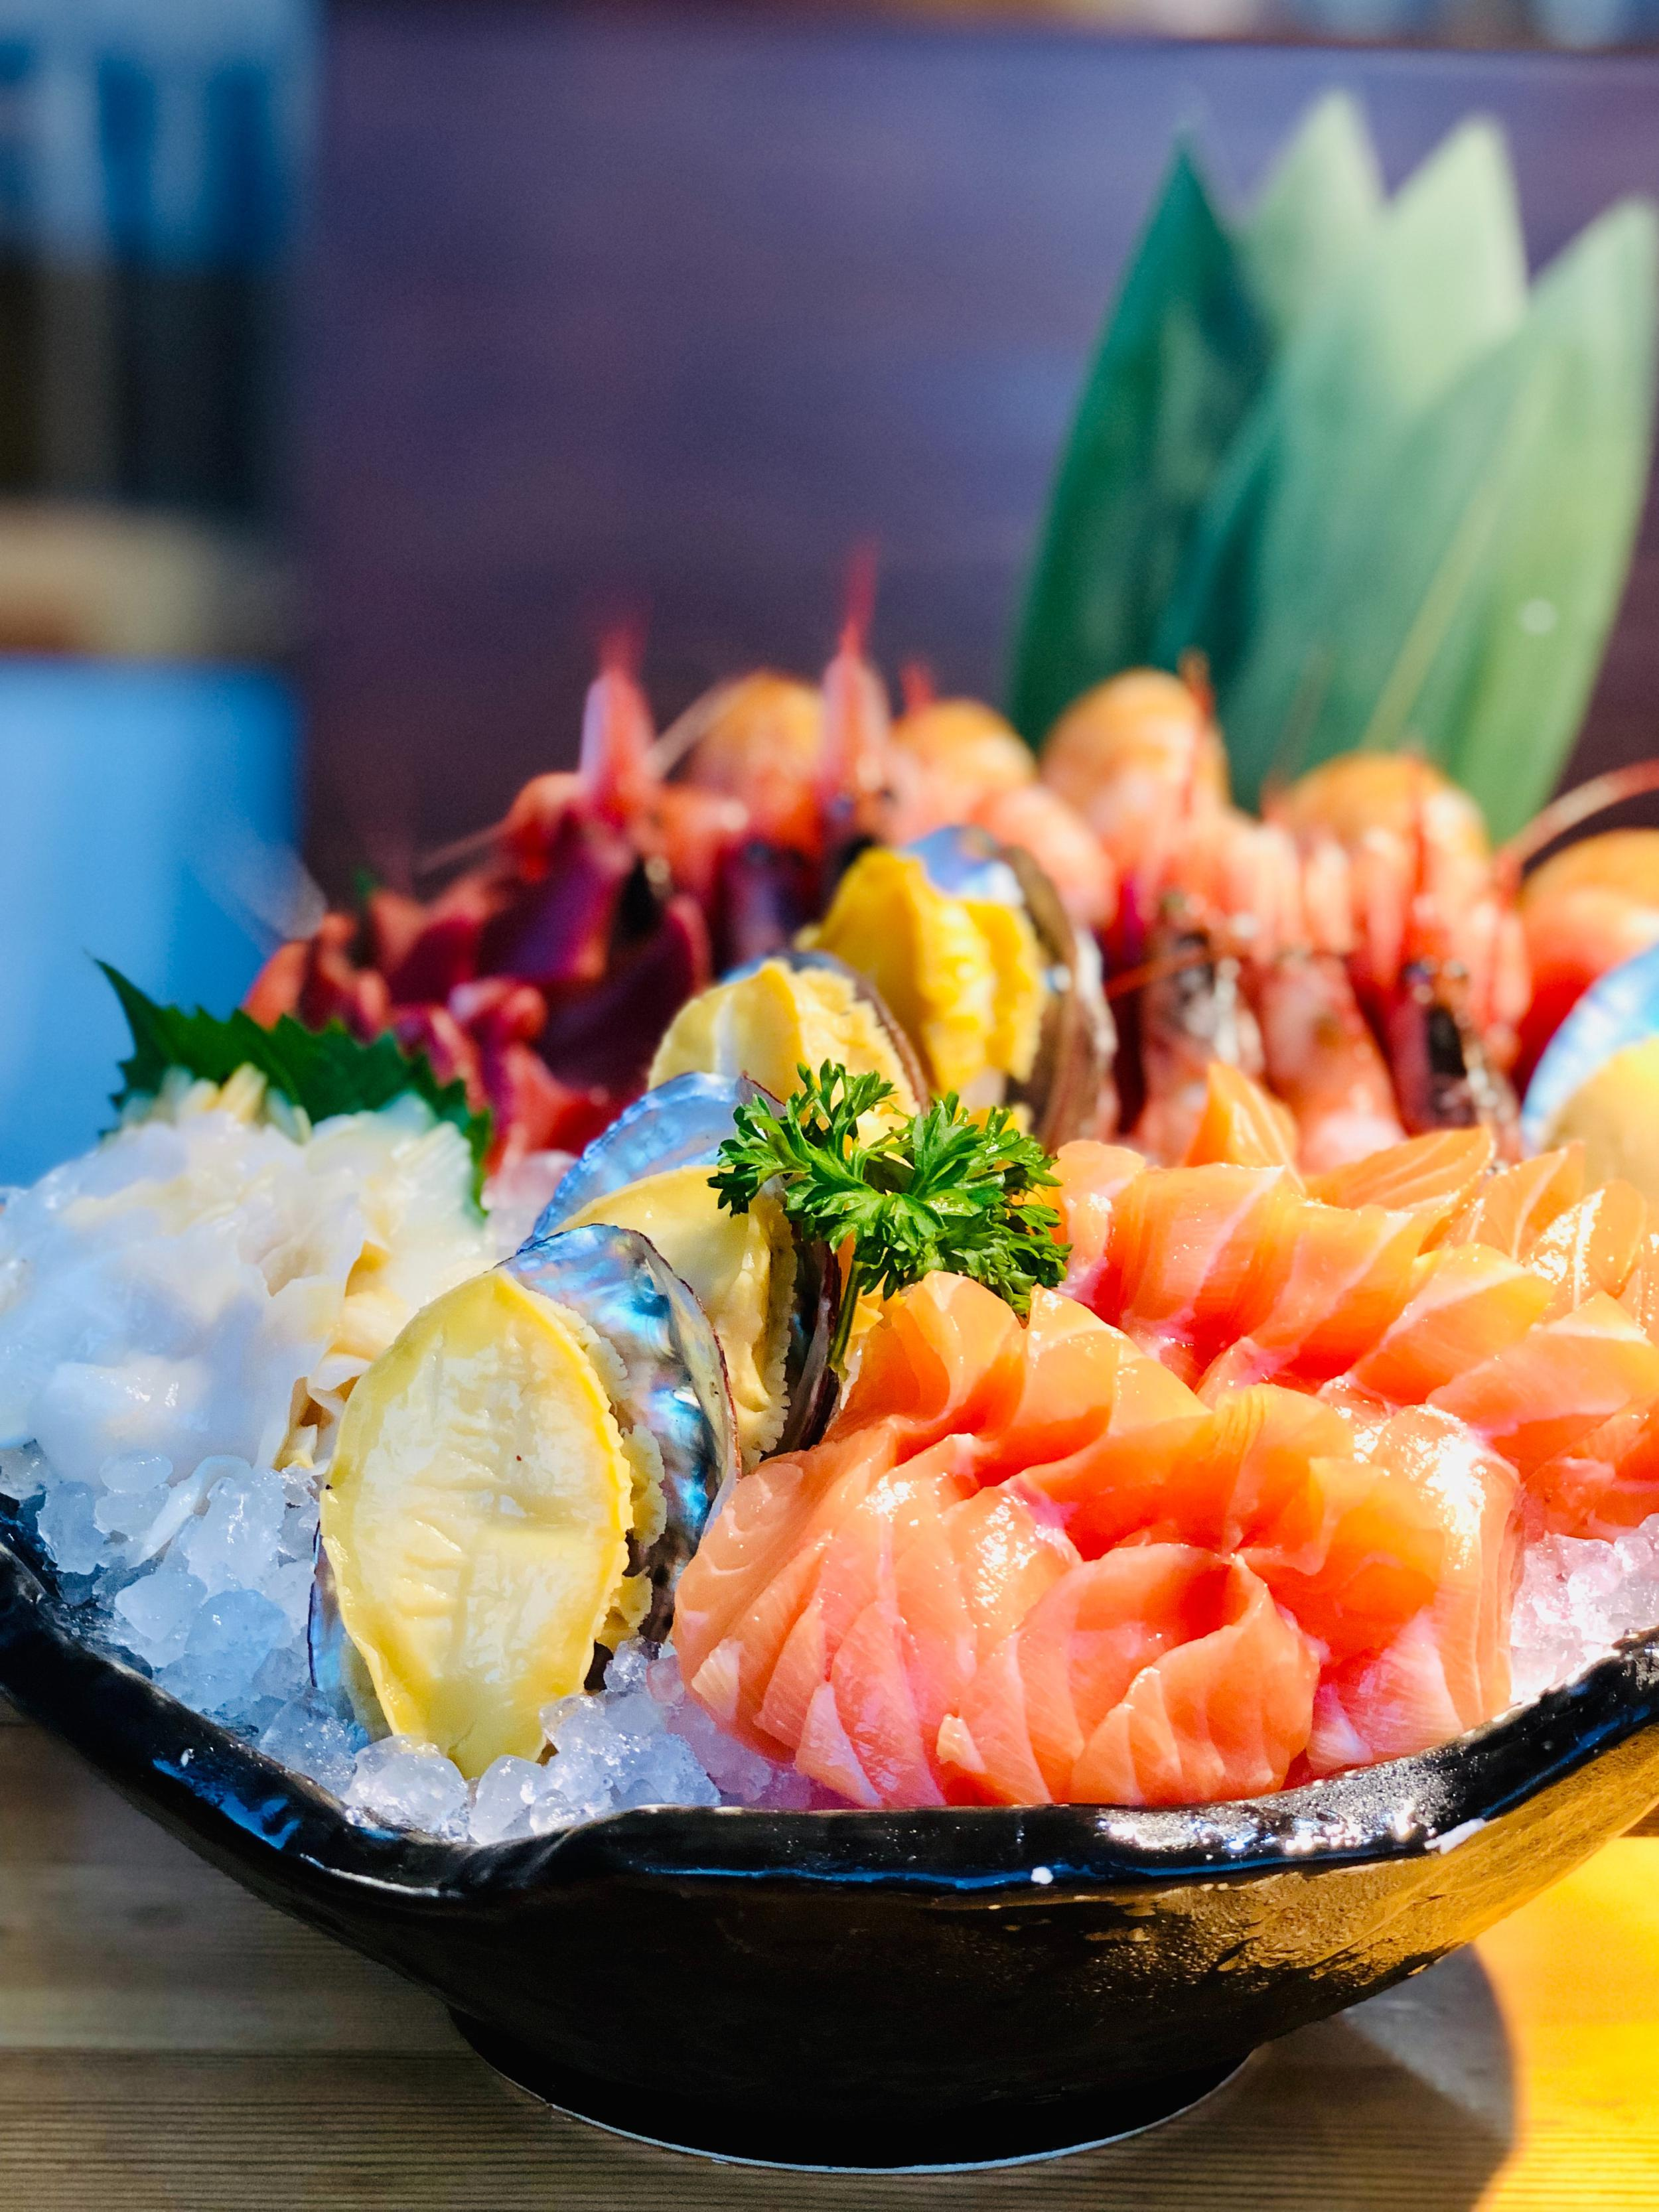 An image of seafood exquisitely served on ice.